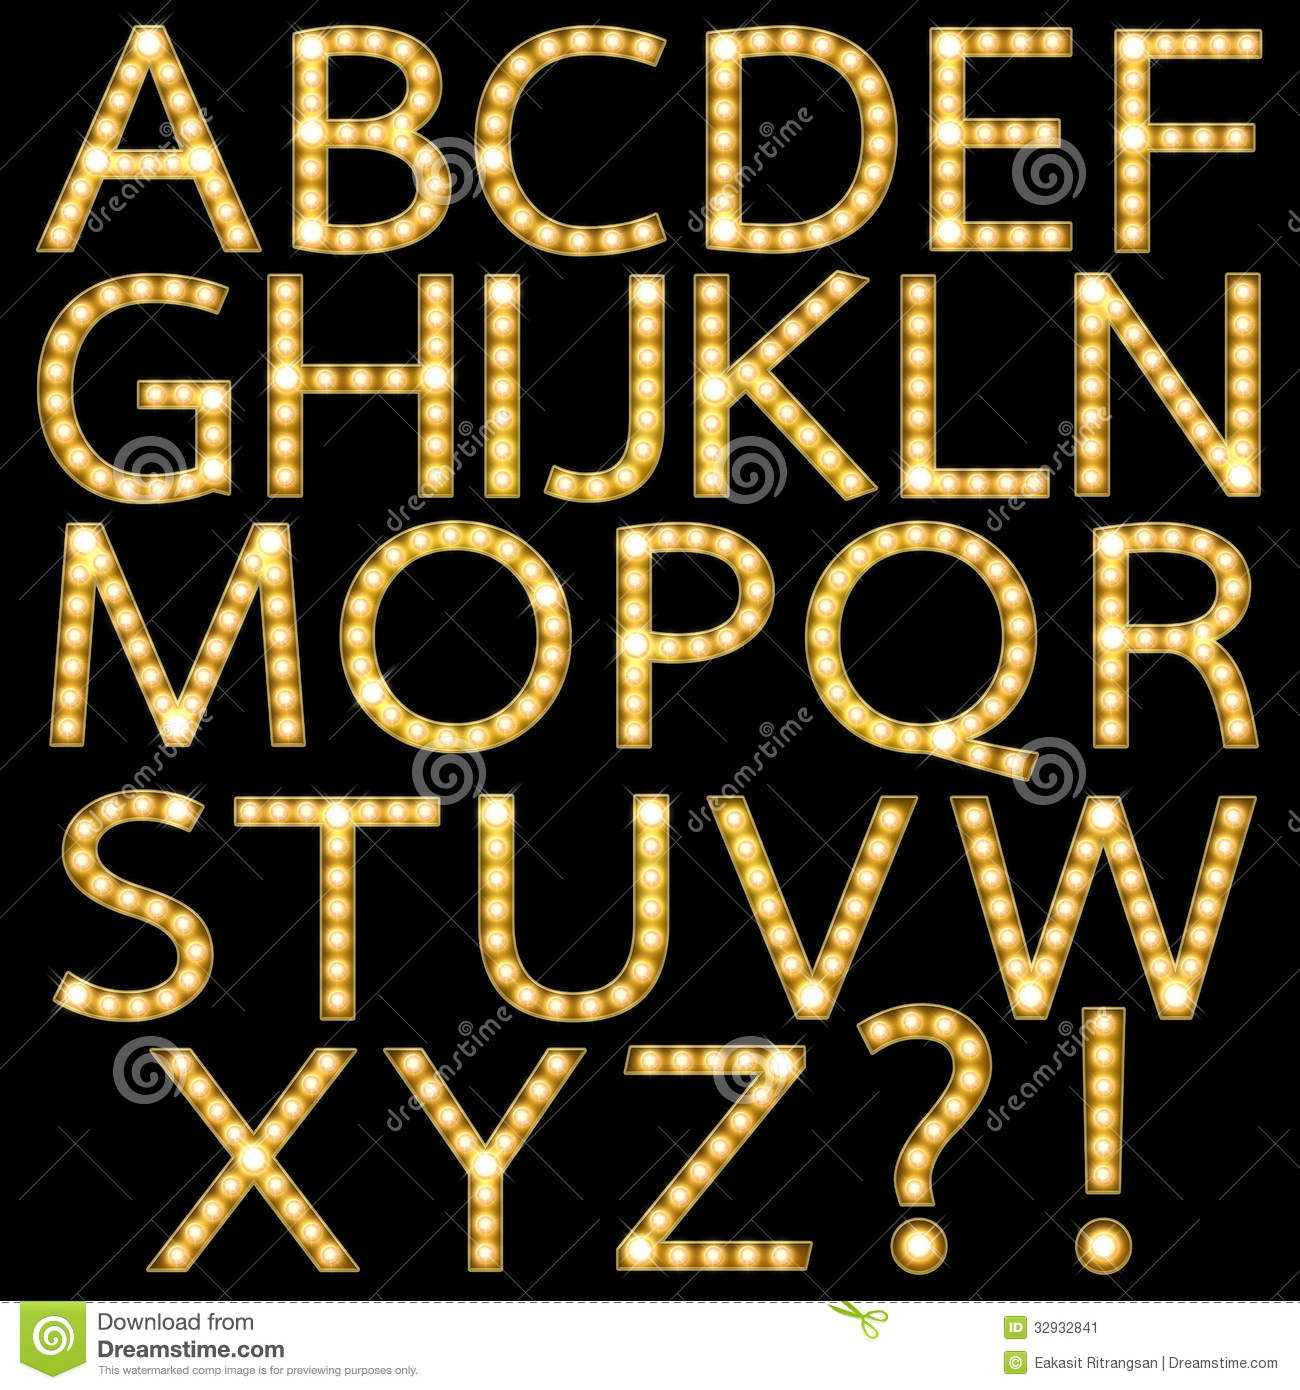 Type the alphabet on time